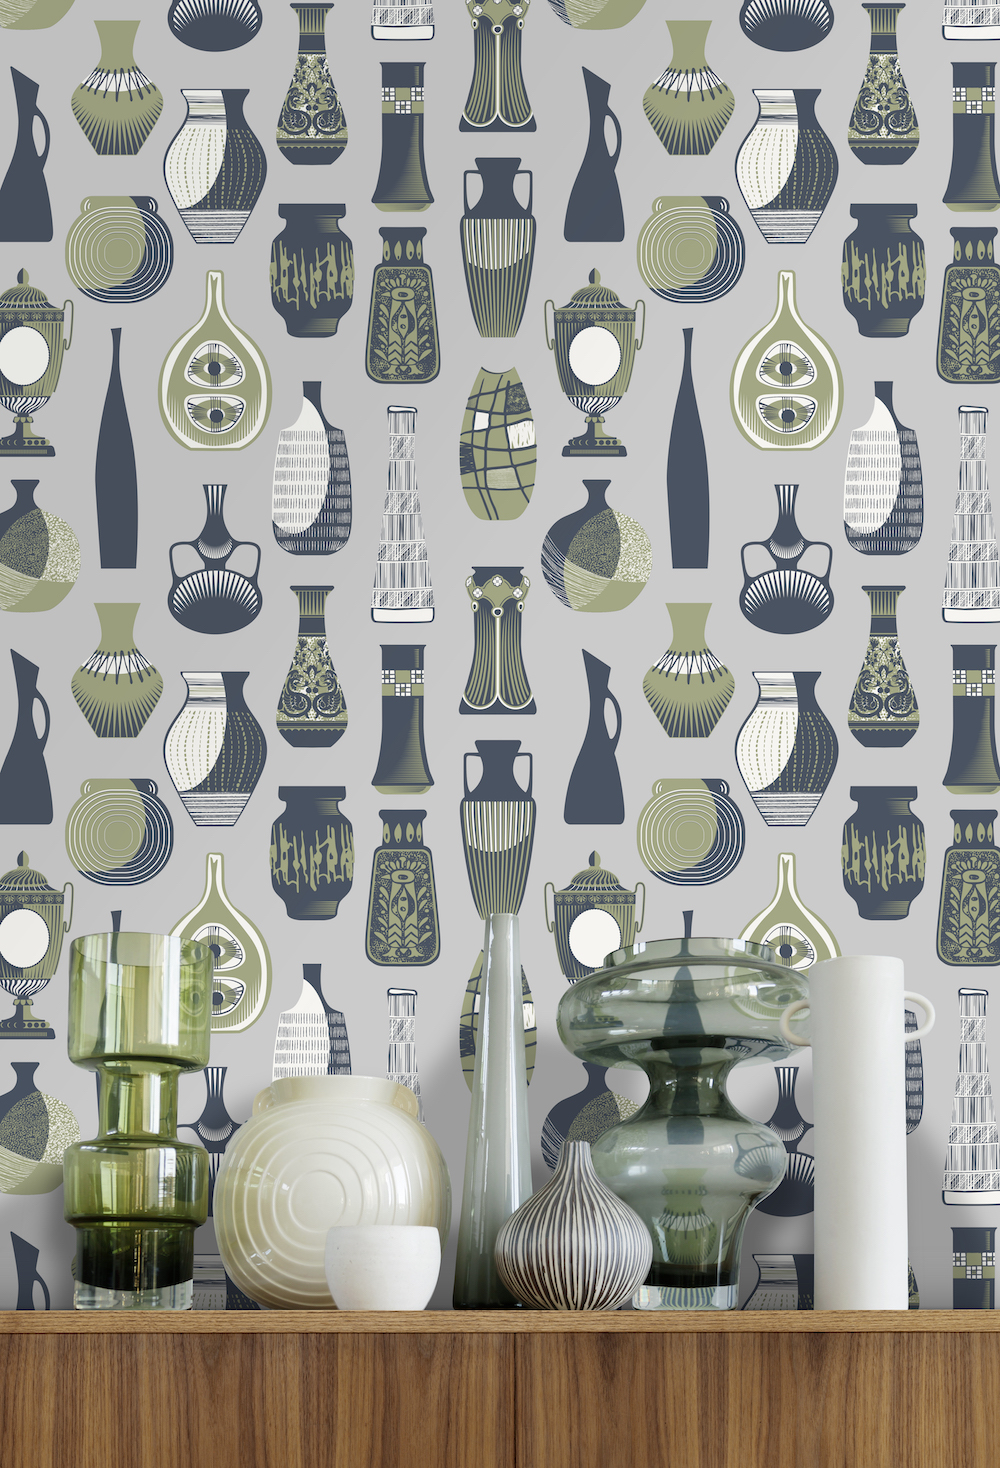 Vessel Wallpaper in Concrete from Mini Moderns  £65 per roll www.minimoderns.com.jpg